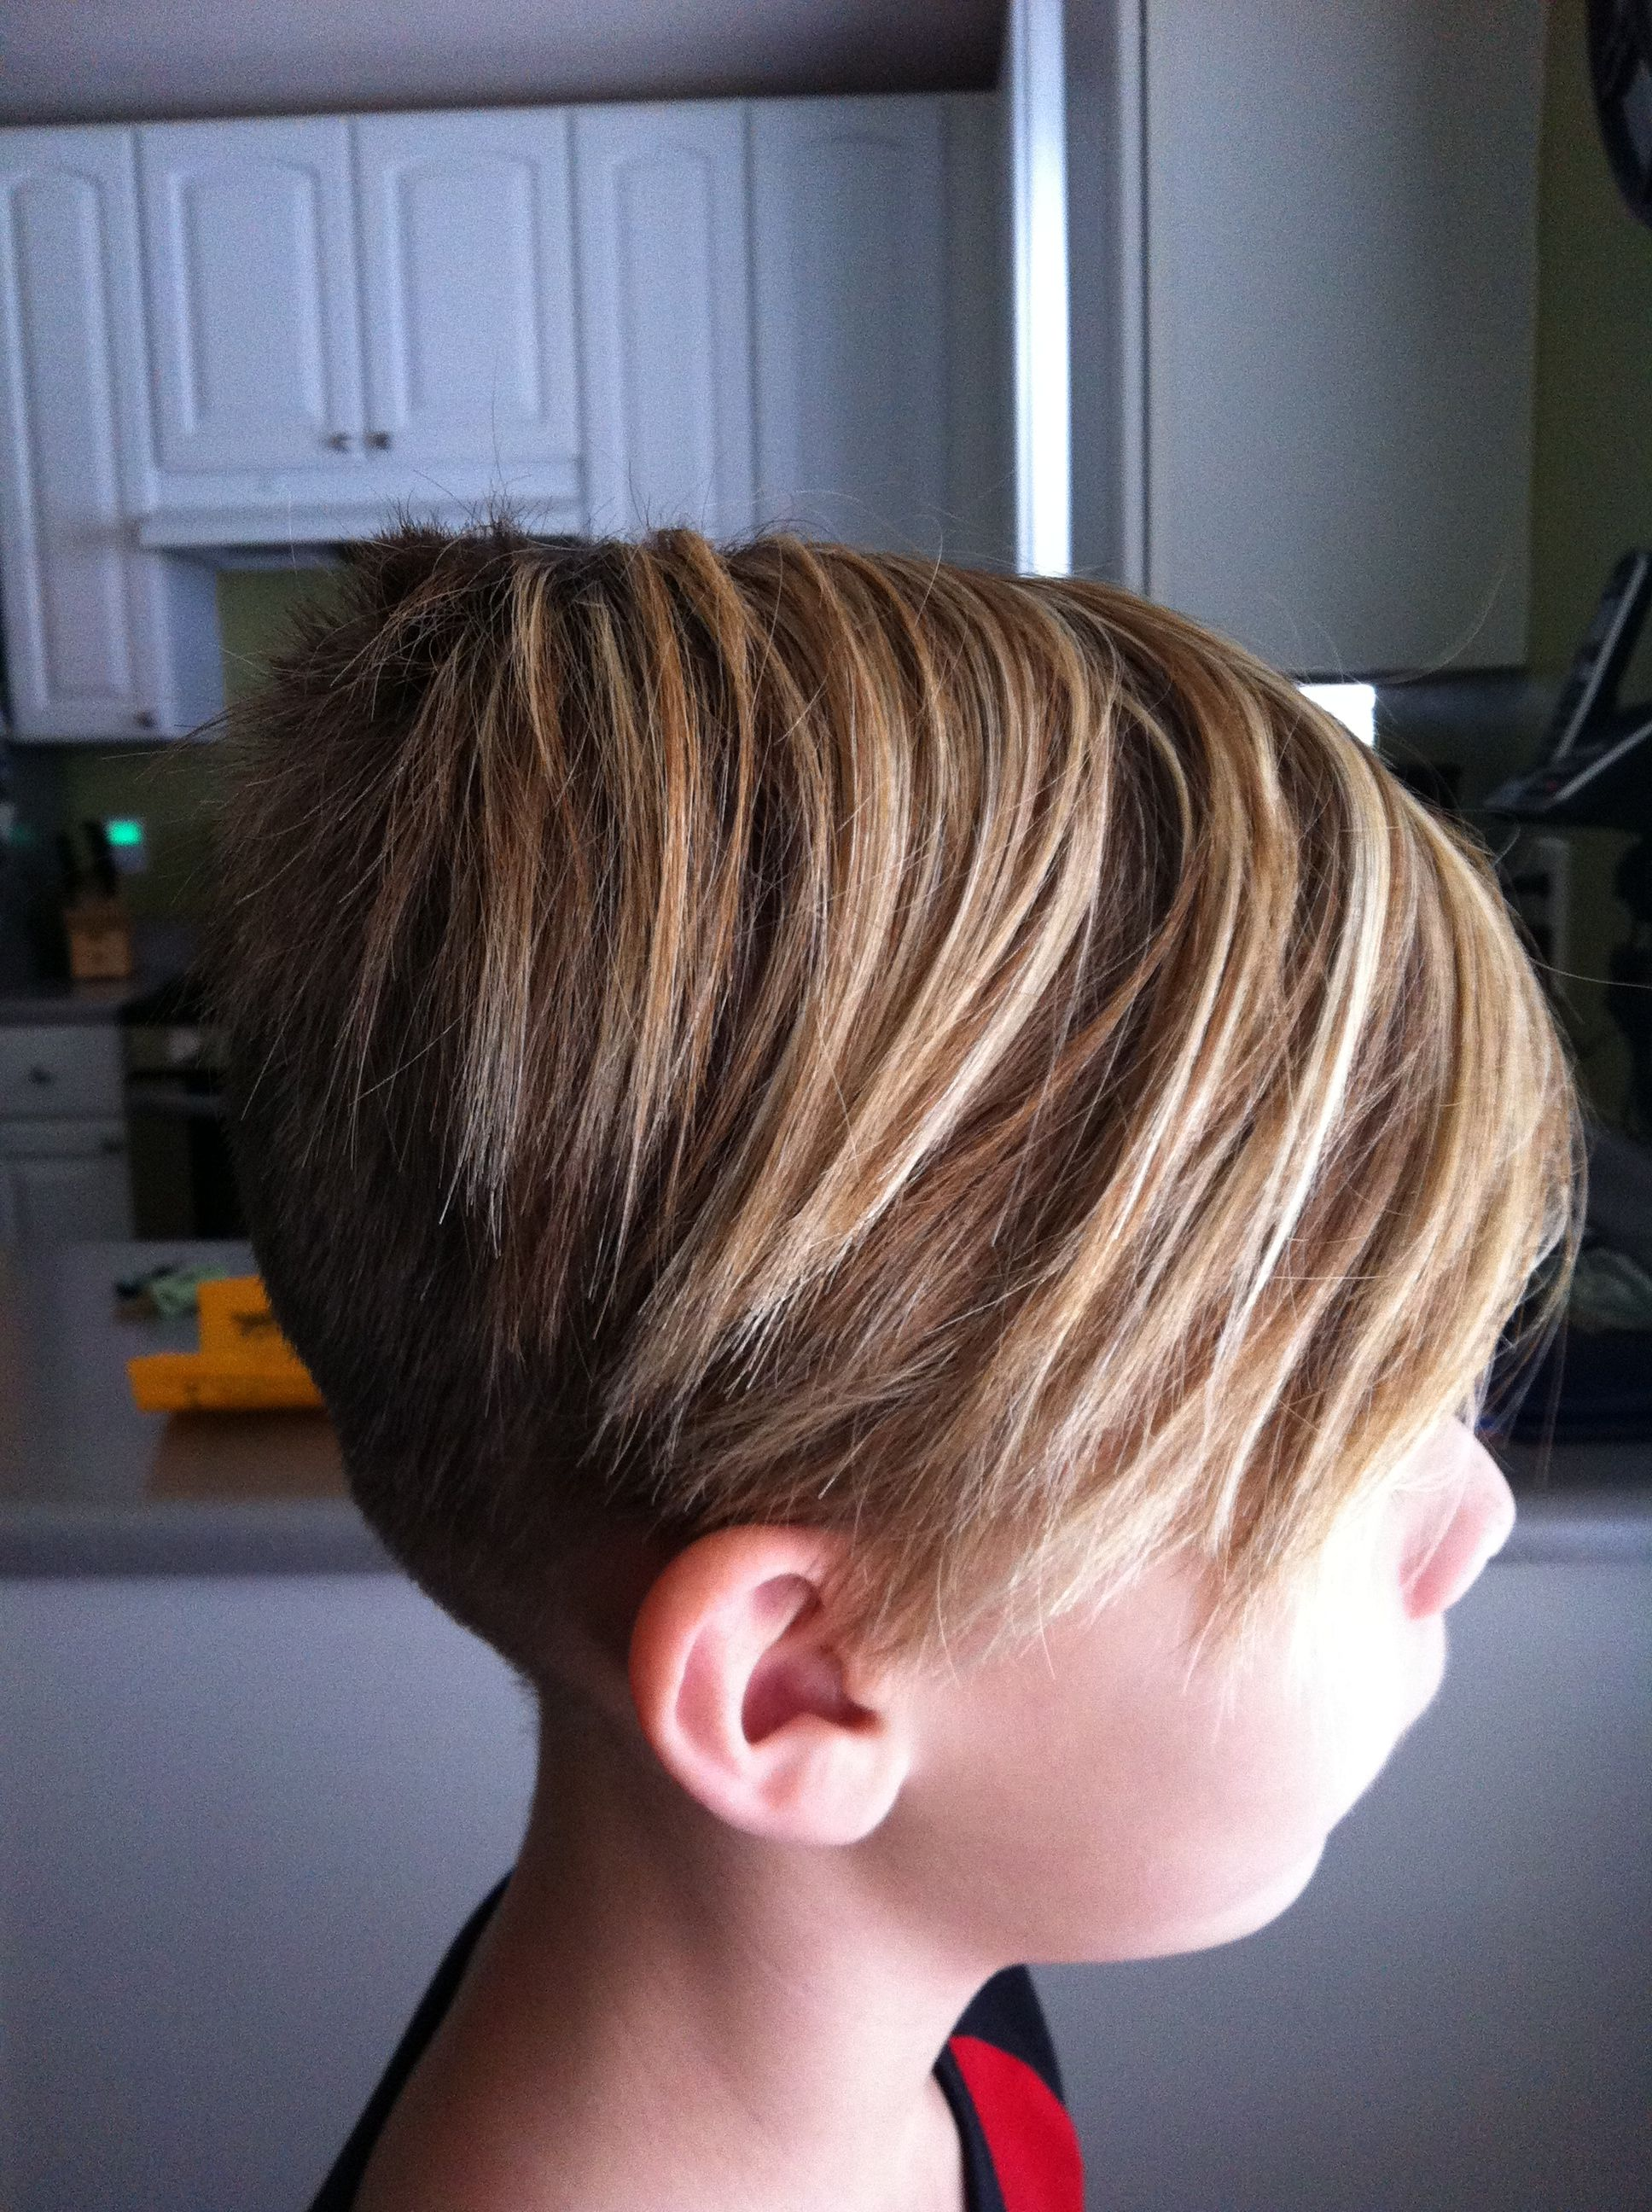 Hair cutting style of boy boys skater cut  fútbol  pinterest  haircuts boy hair and hair cuts